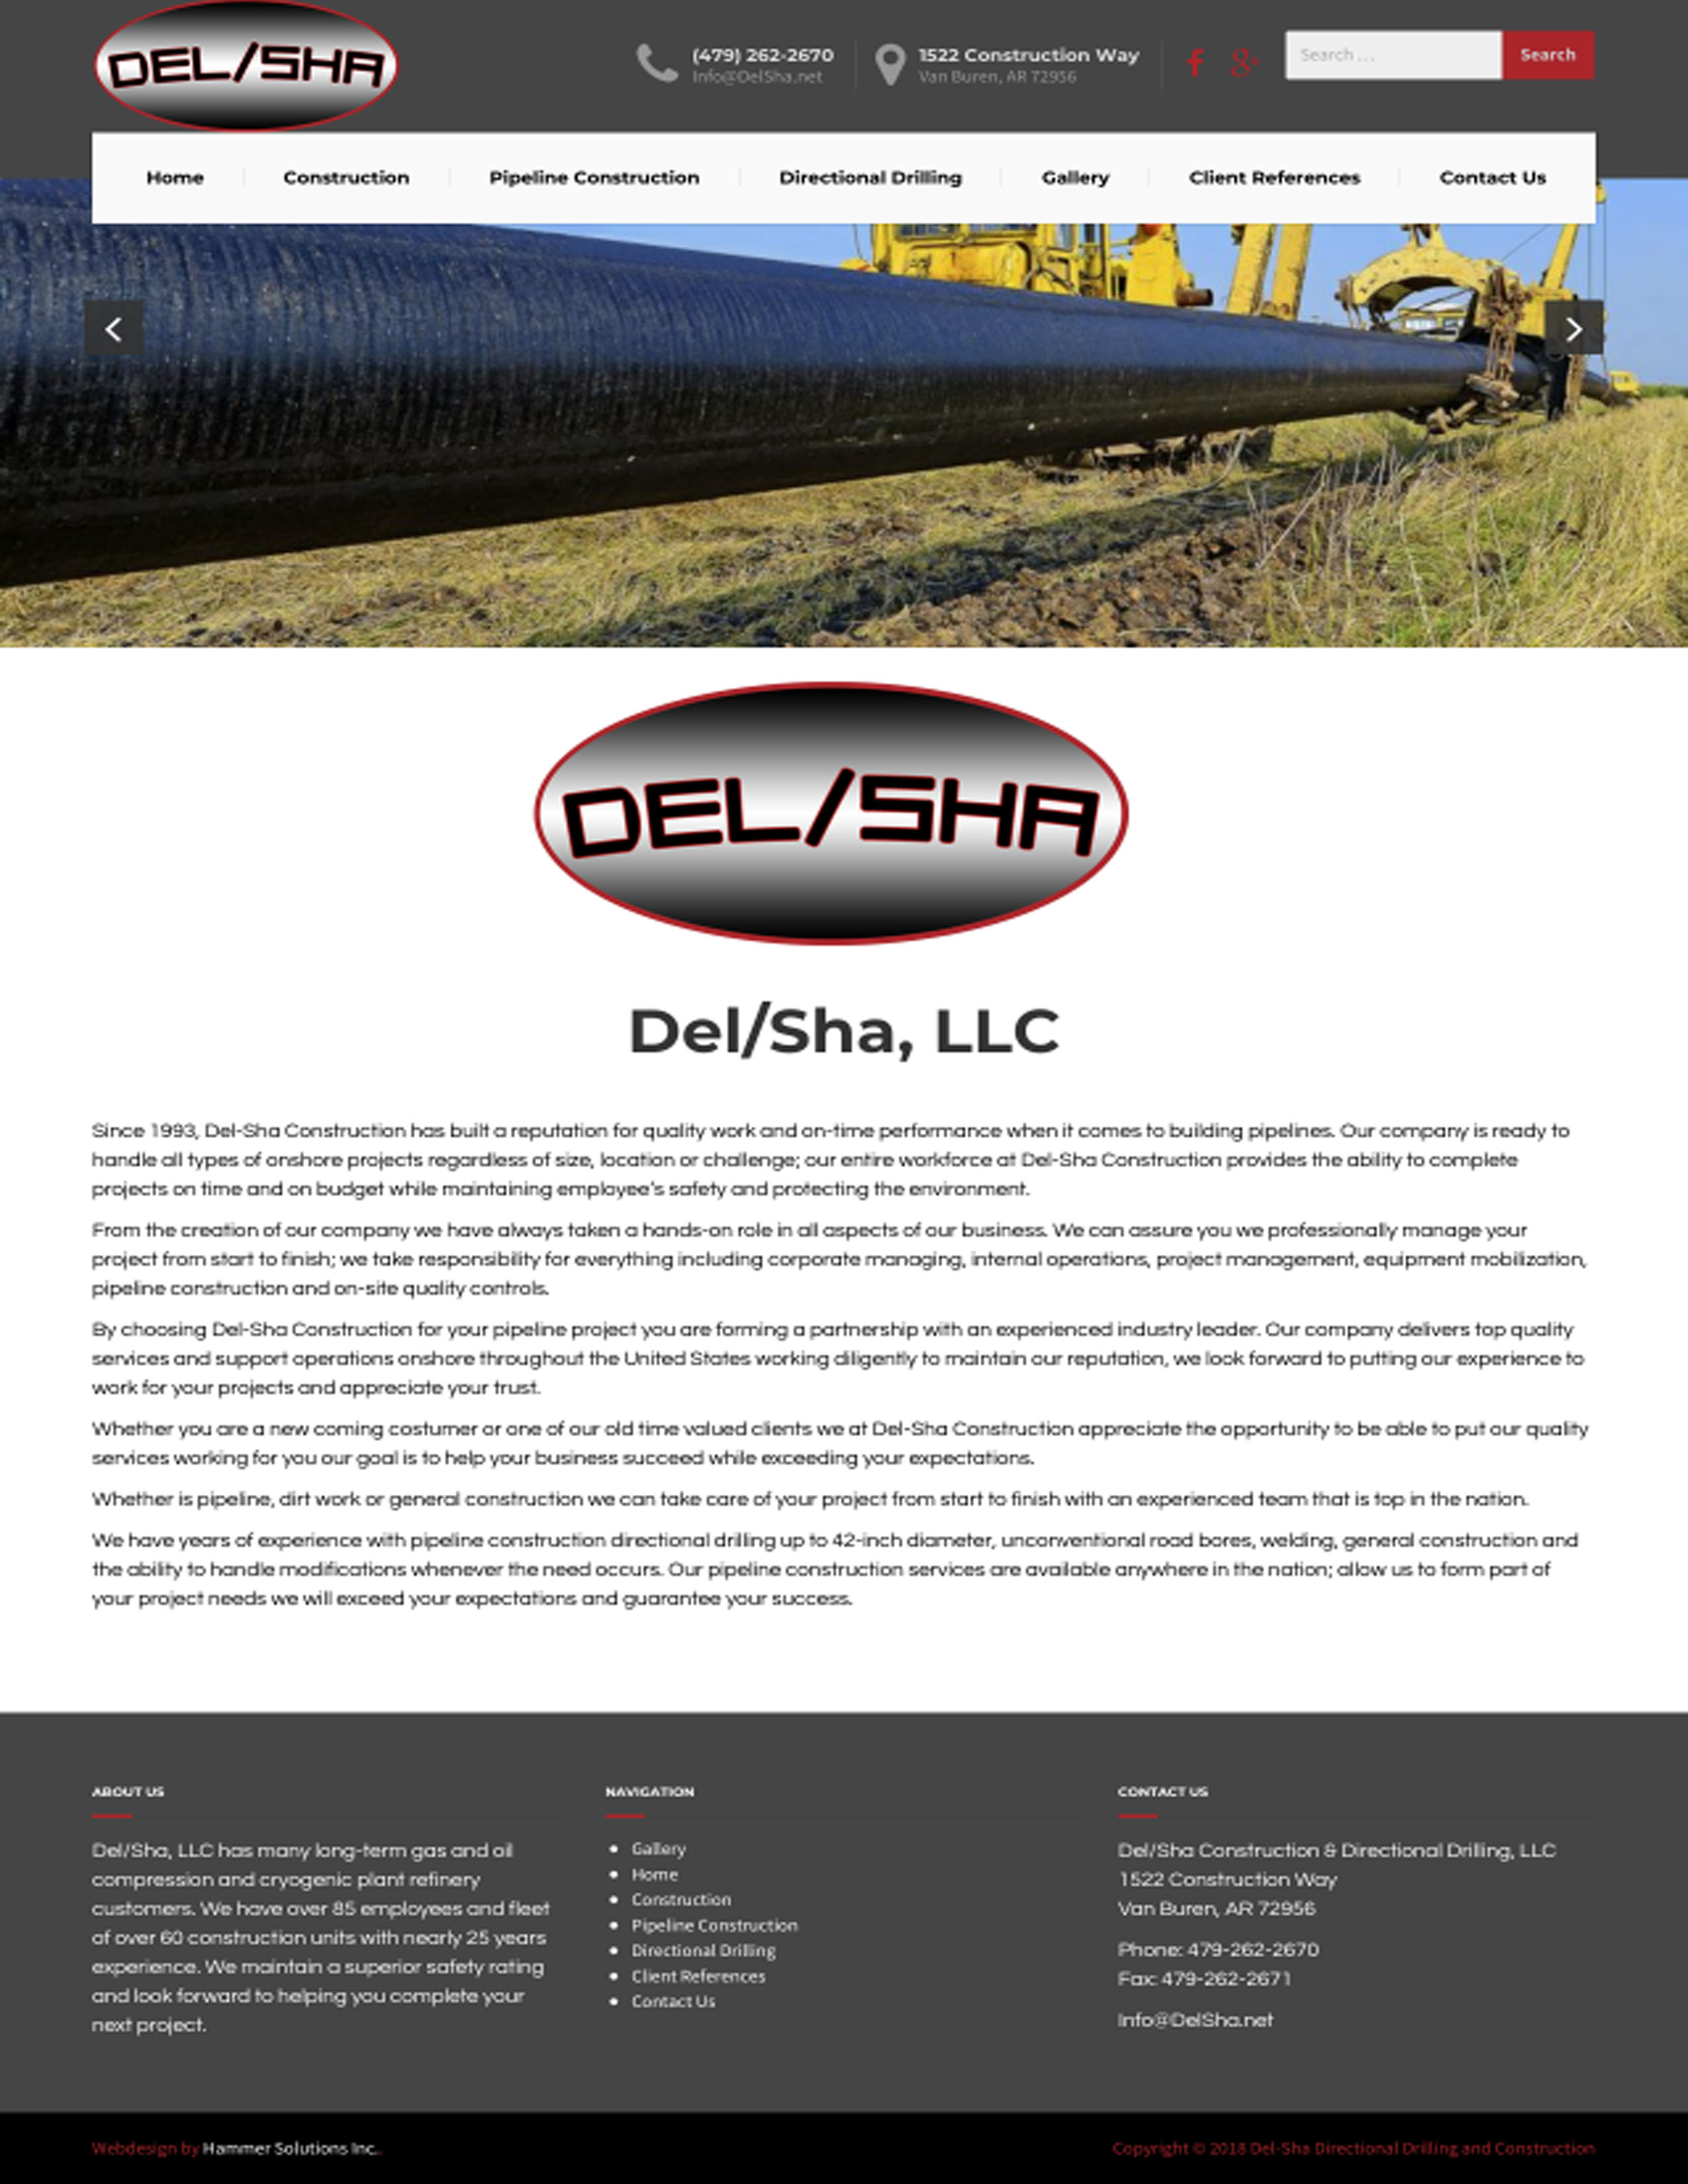 Del Sha Construction Del-Sha Pipeline DelSha Directional Drilling Van Buren Arkansas Hammer Solutions Website Design Web Design Web Development